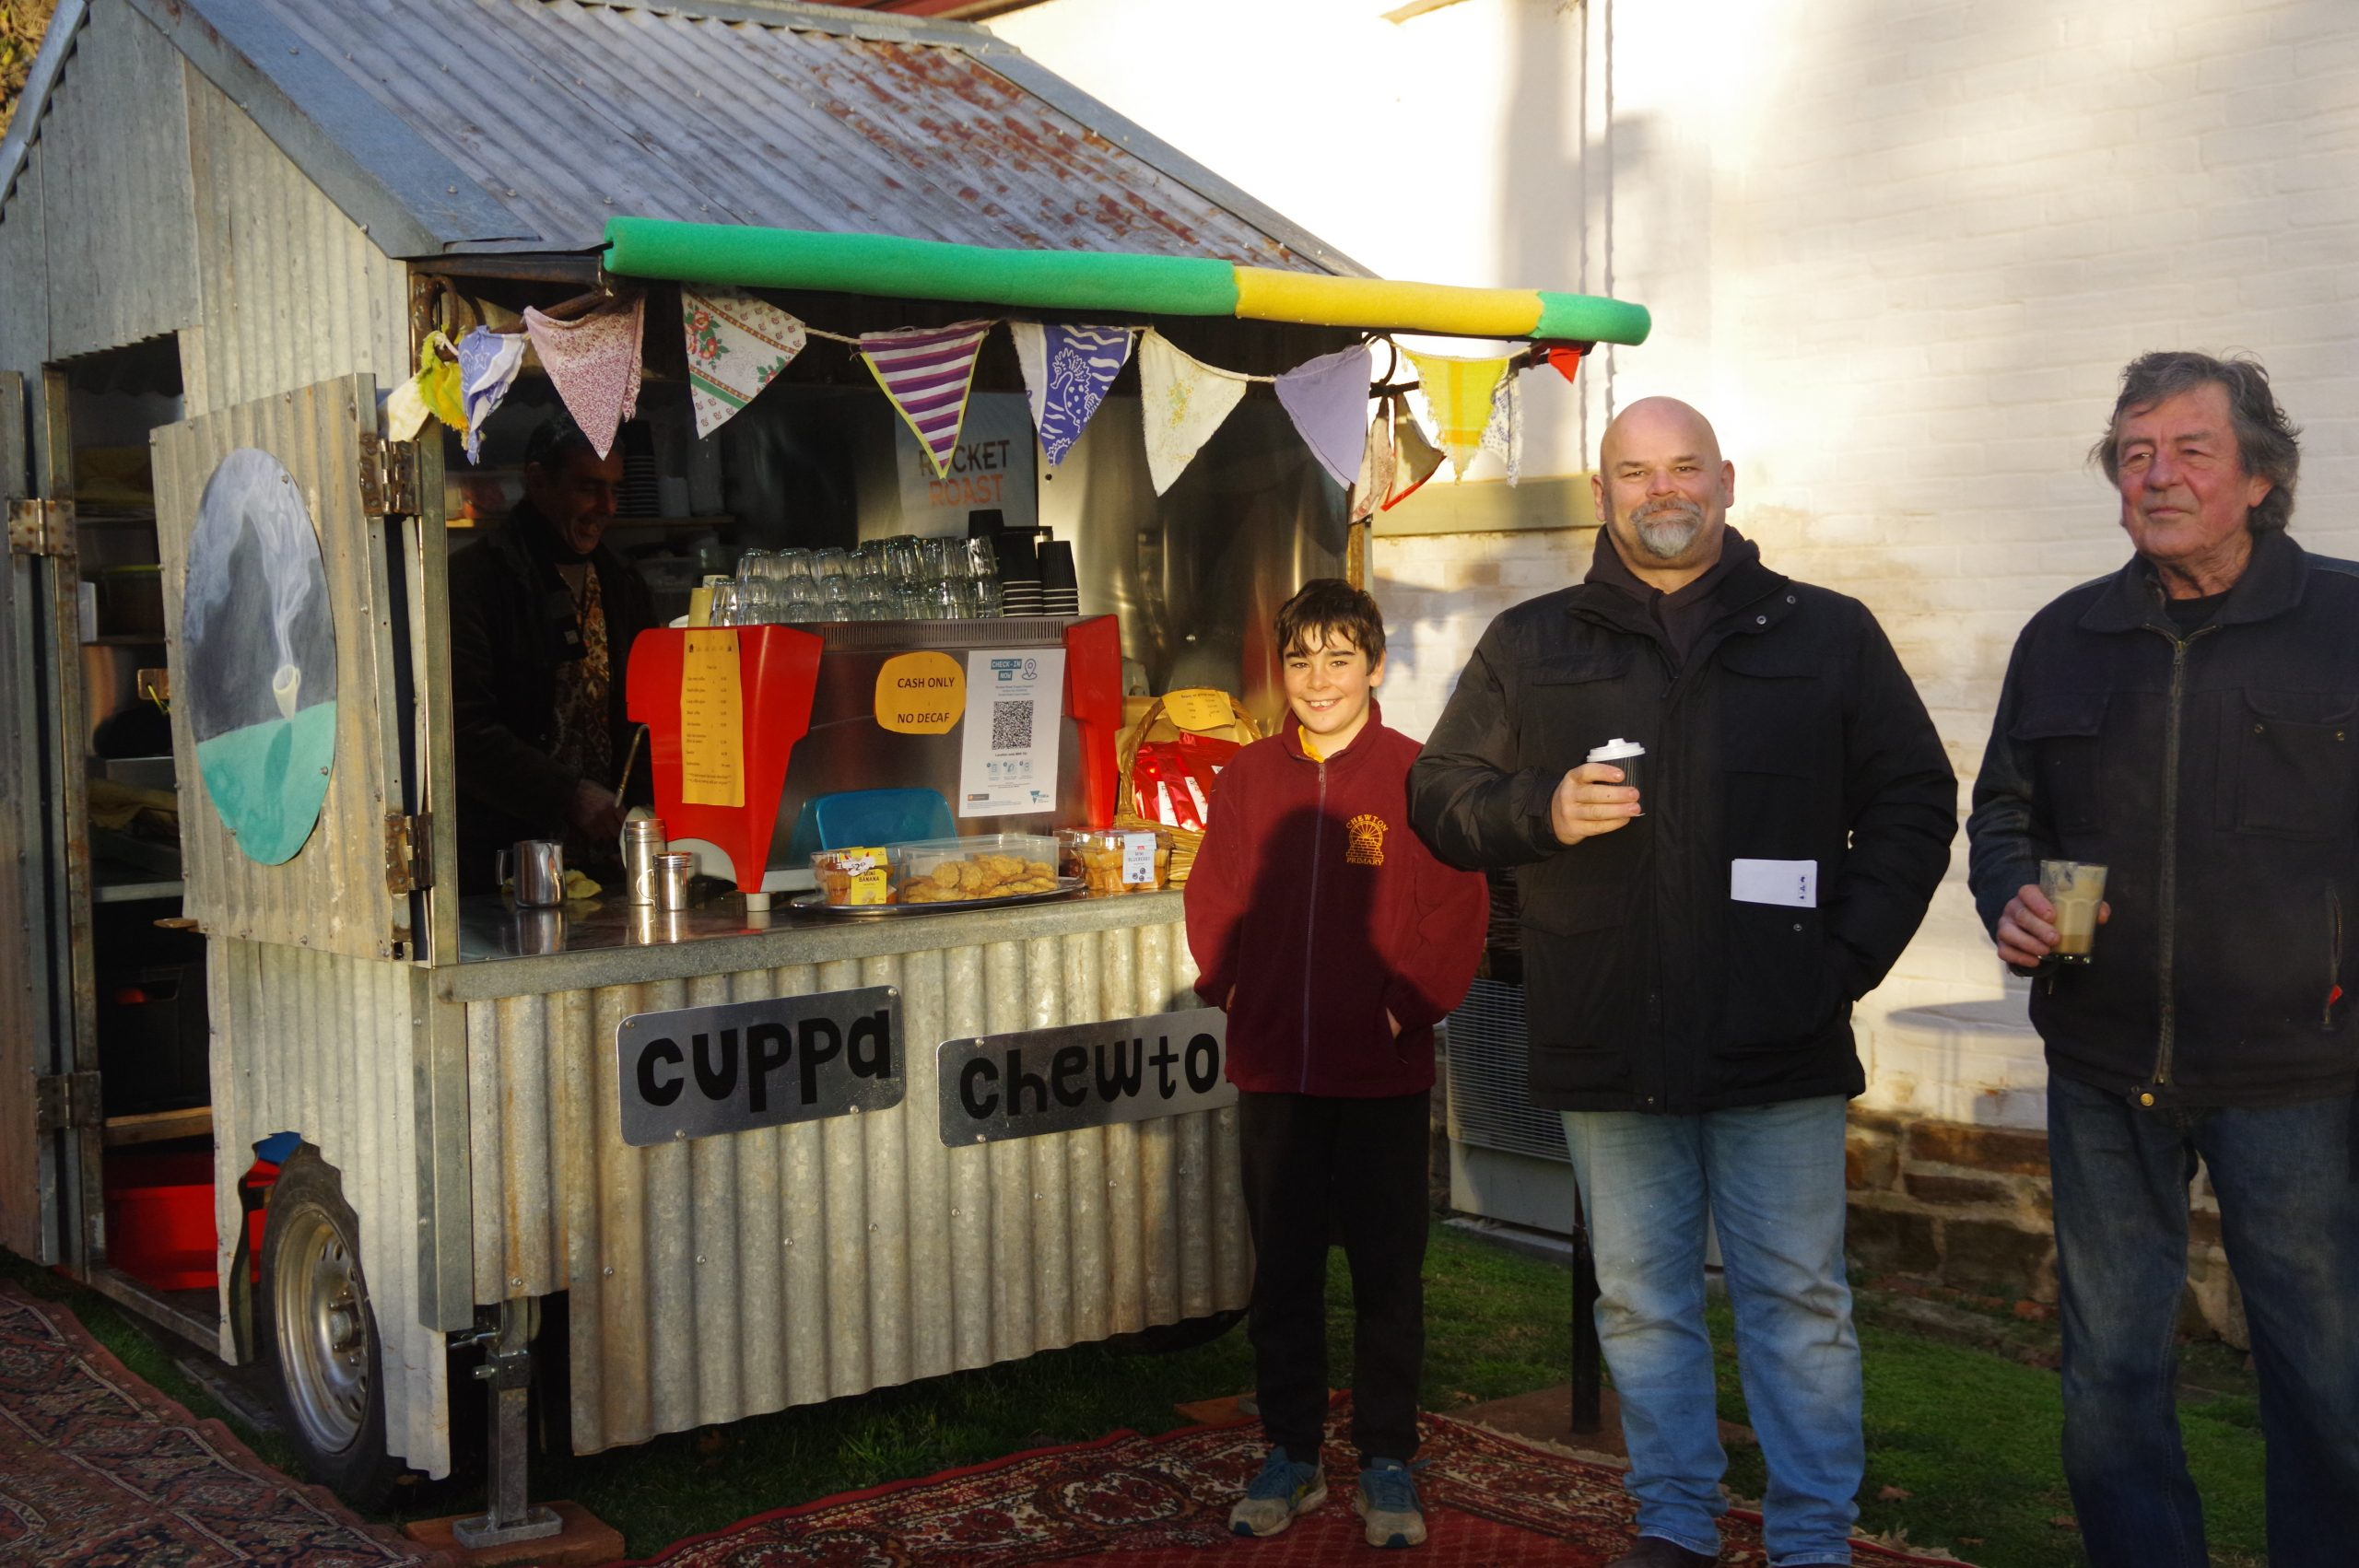 Chewton locals have welcomed 'Cuppa Chewton'. Photo: Max Lesser.